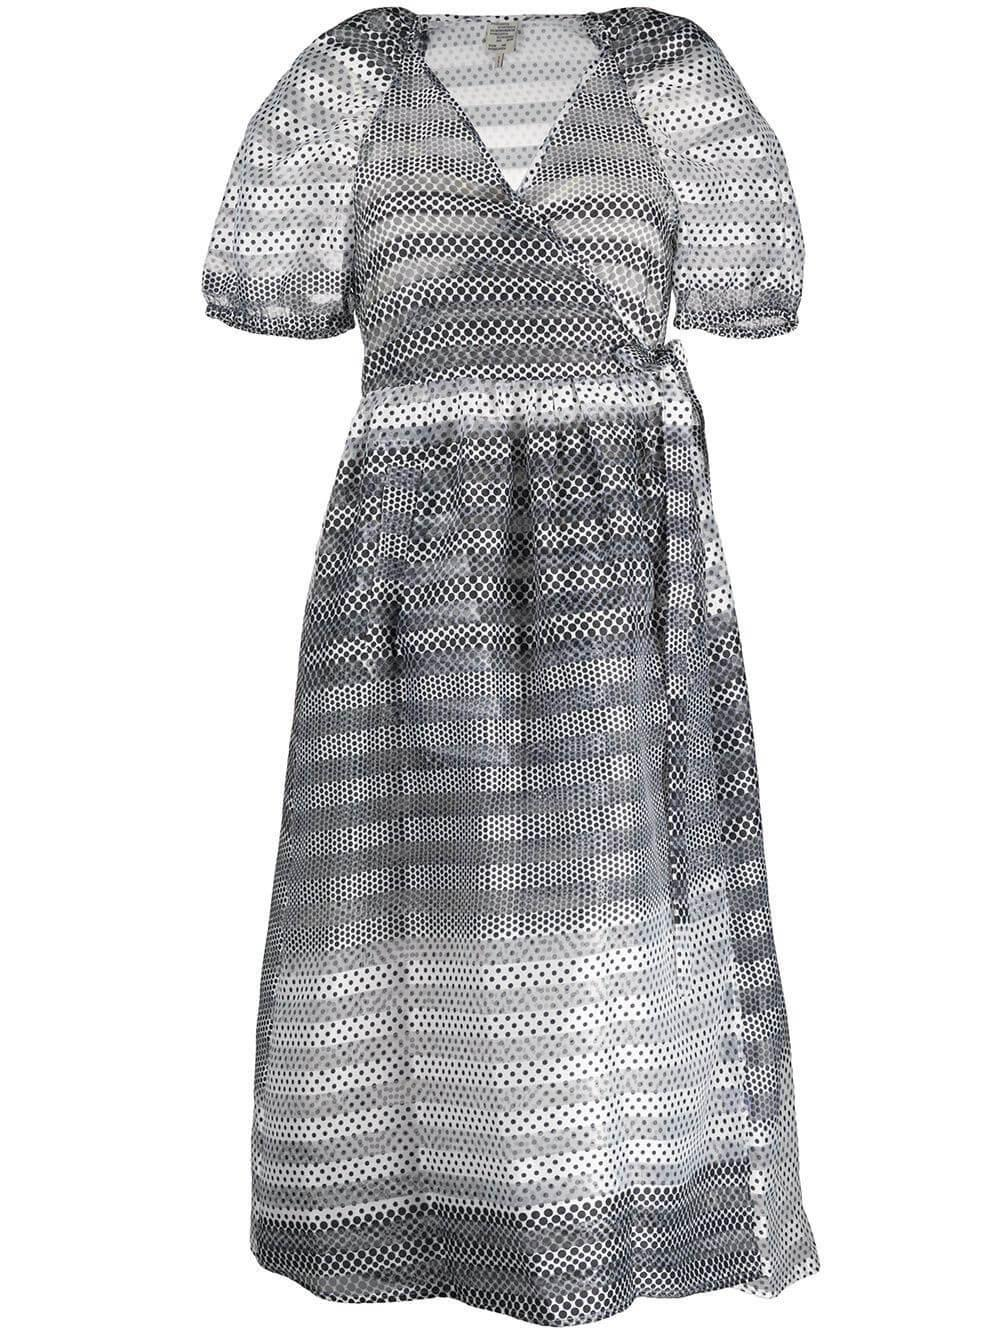 Adalaine Midi Wrap Polkadot Dress Item # 21391